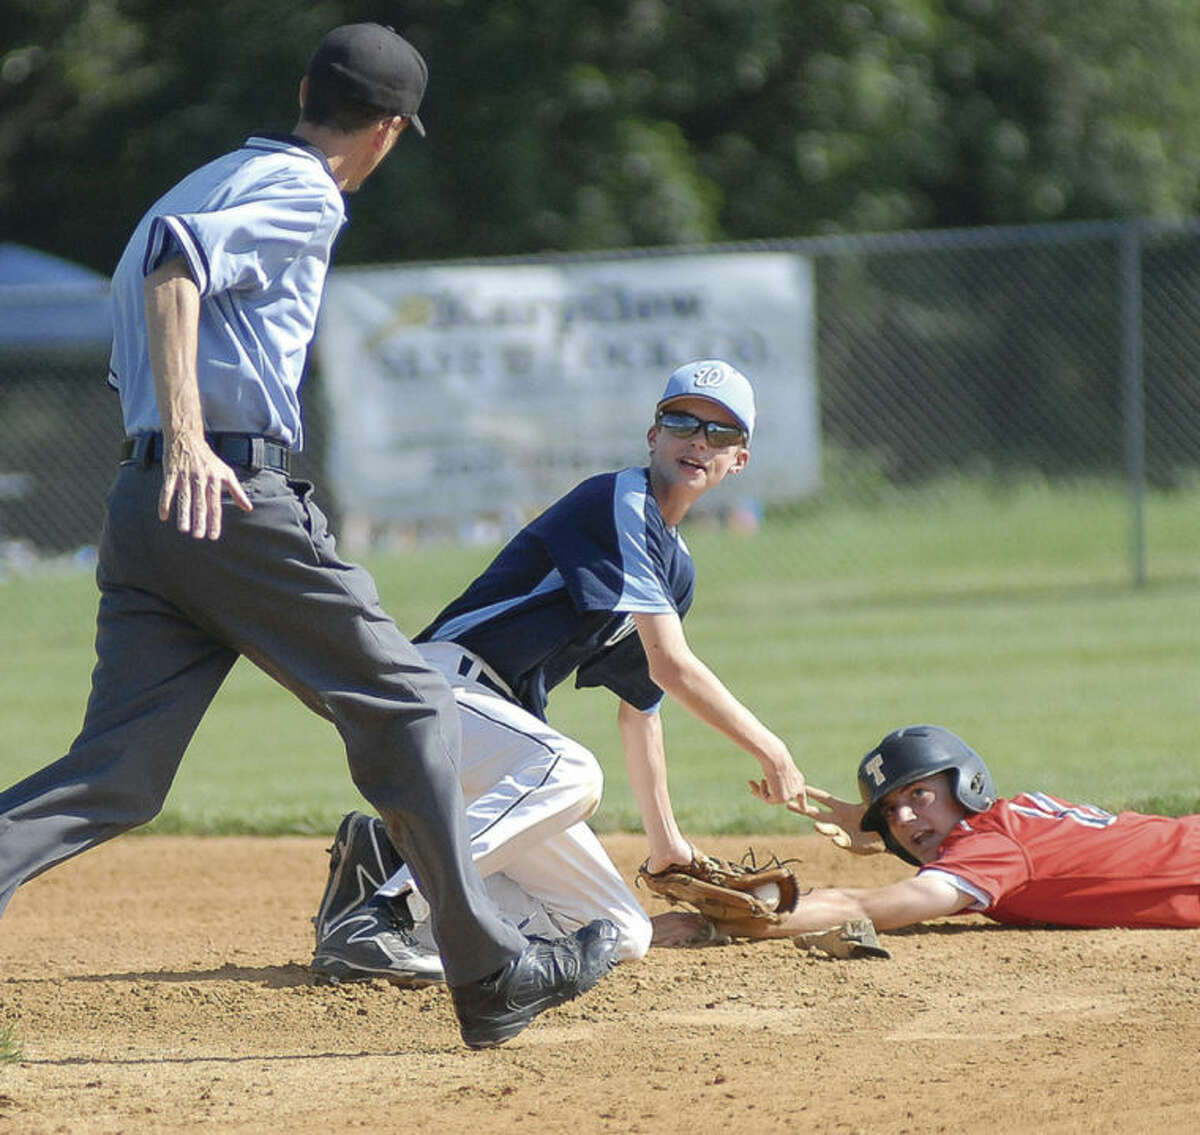 Hour photo/John Nash Wilton Junior Legion second baseman Ryan Osgood, center, gestures toward the umpire during Monday's state tournament game in Trumbull. Wilton stunned Trumbull, the Zone 4 regular season champs, with a 3-0 win.